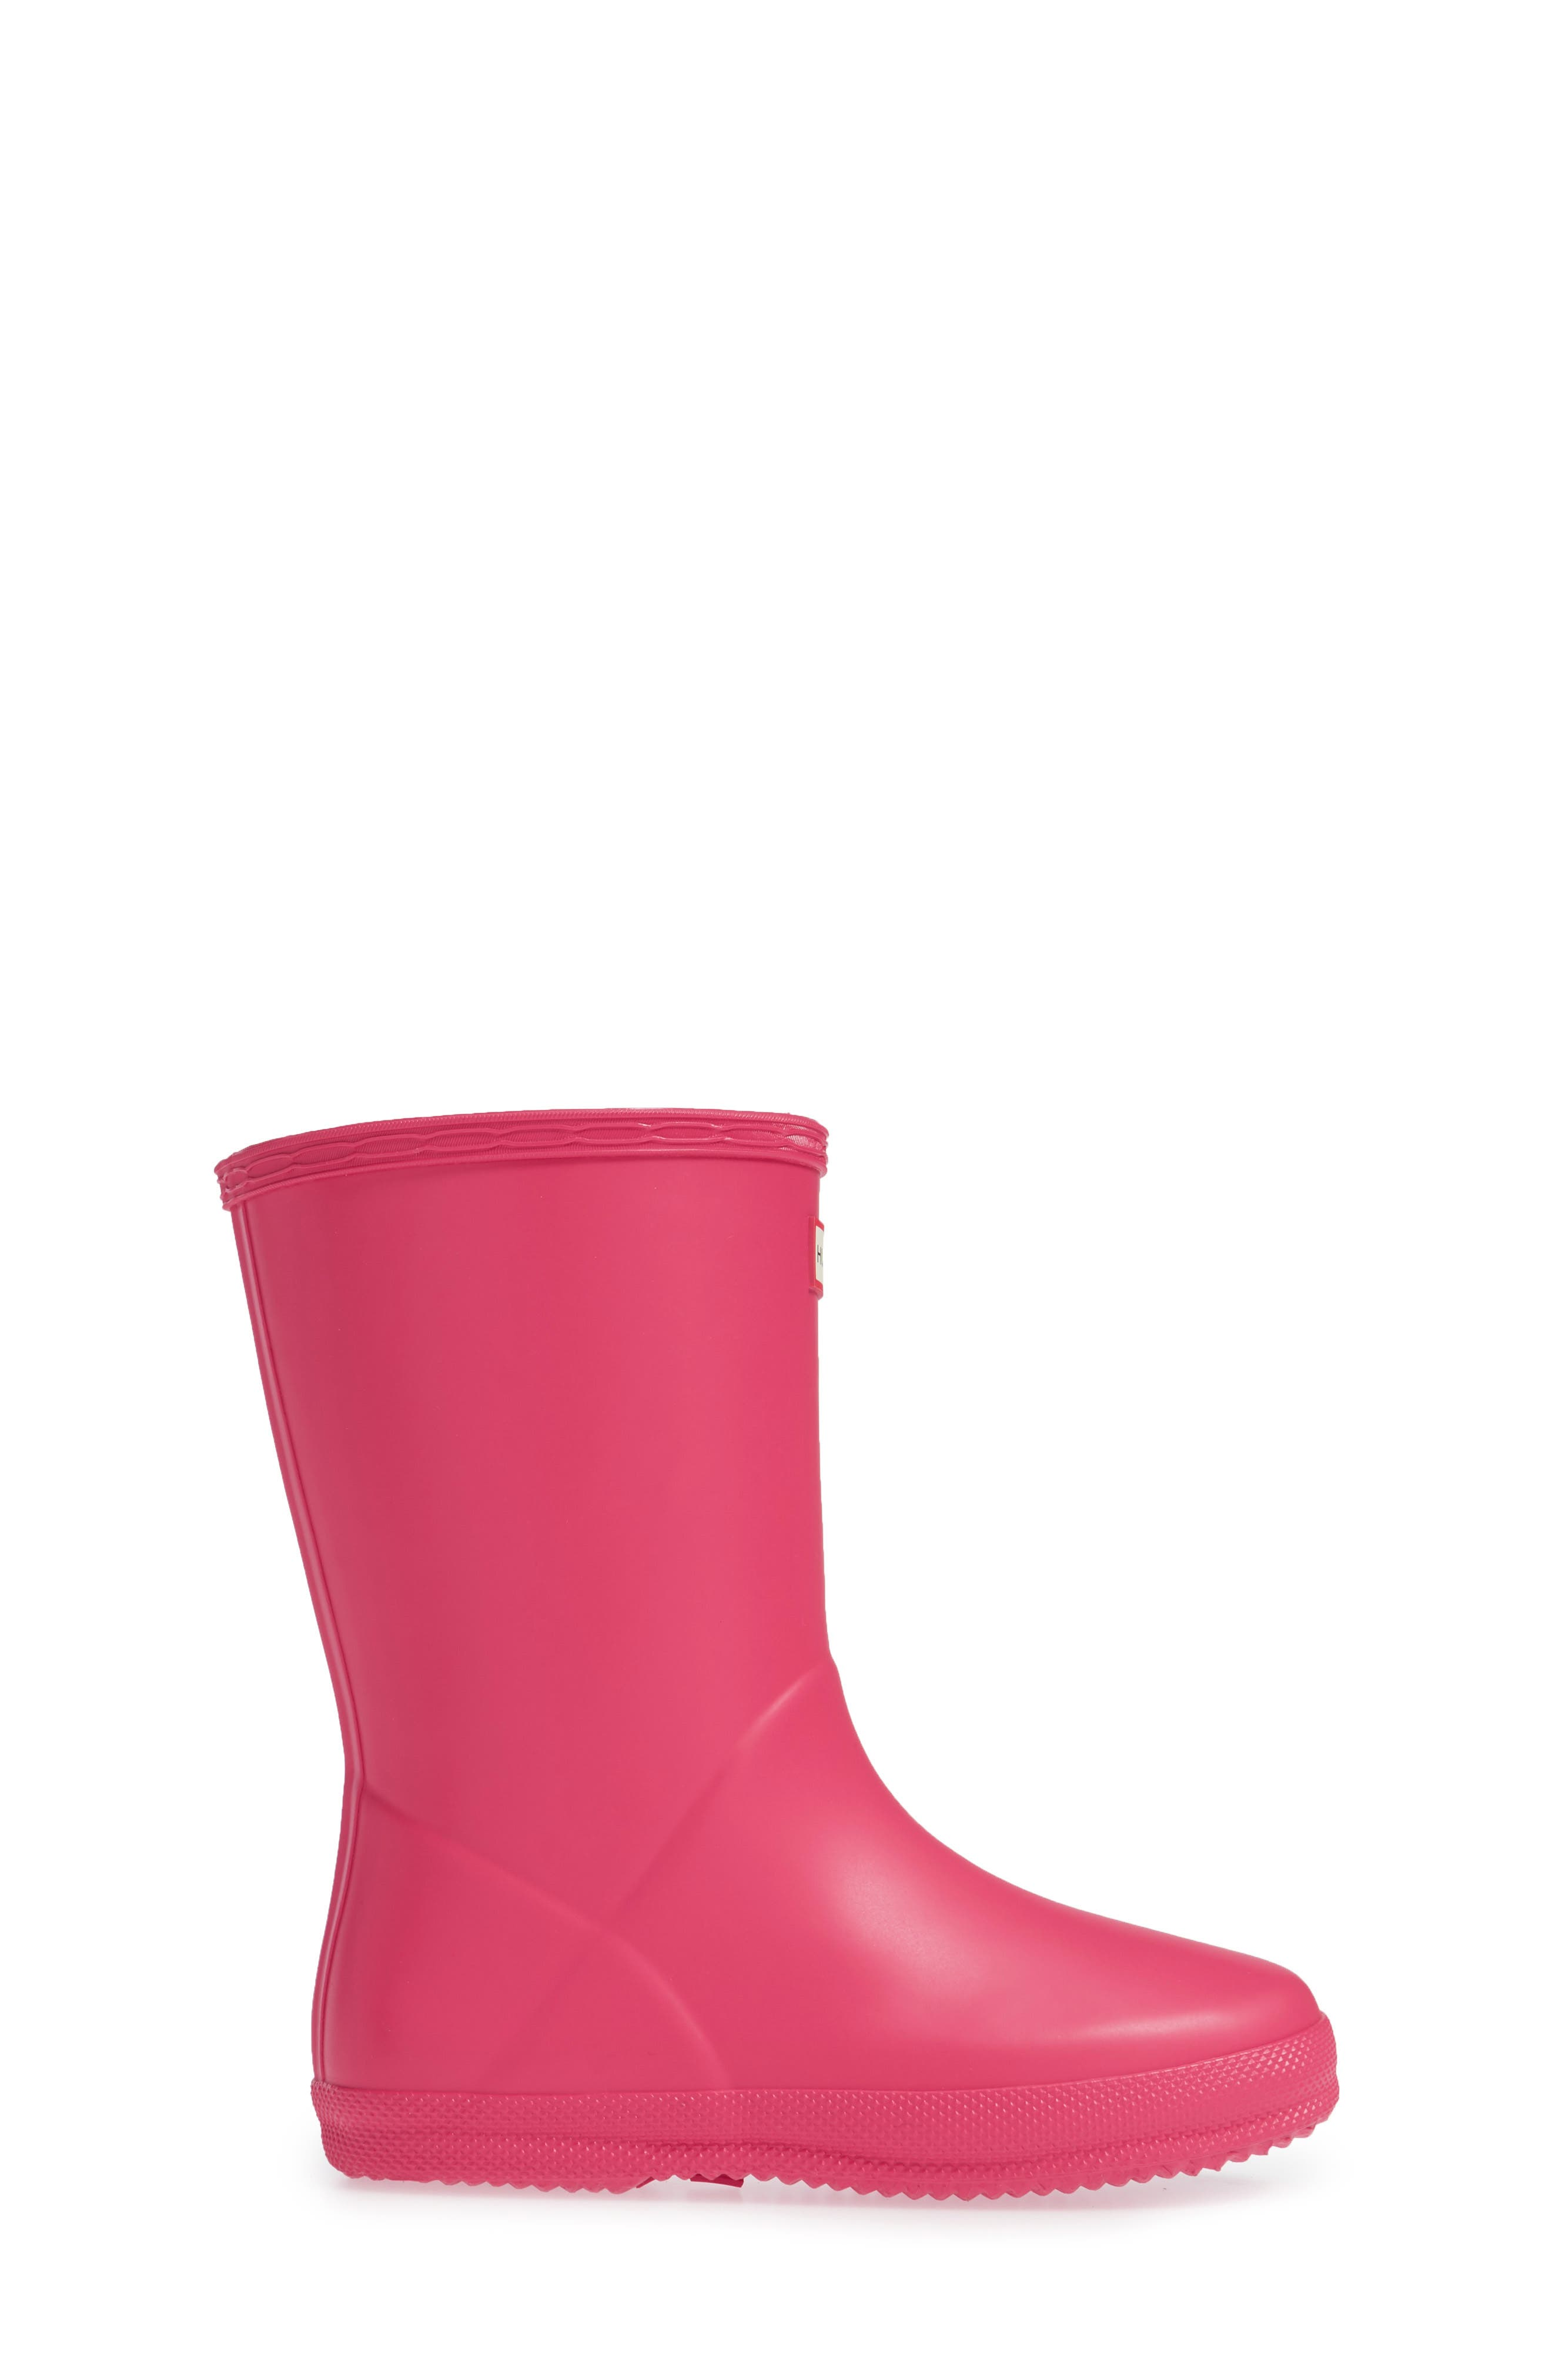 'First Classic' Rain Boot,                             Alternate thumbnail 3, color,                             Bright Pink